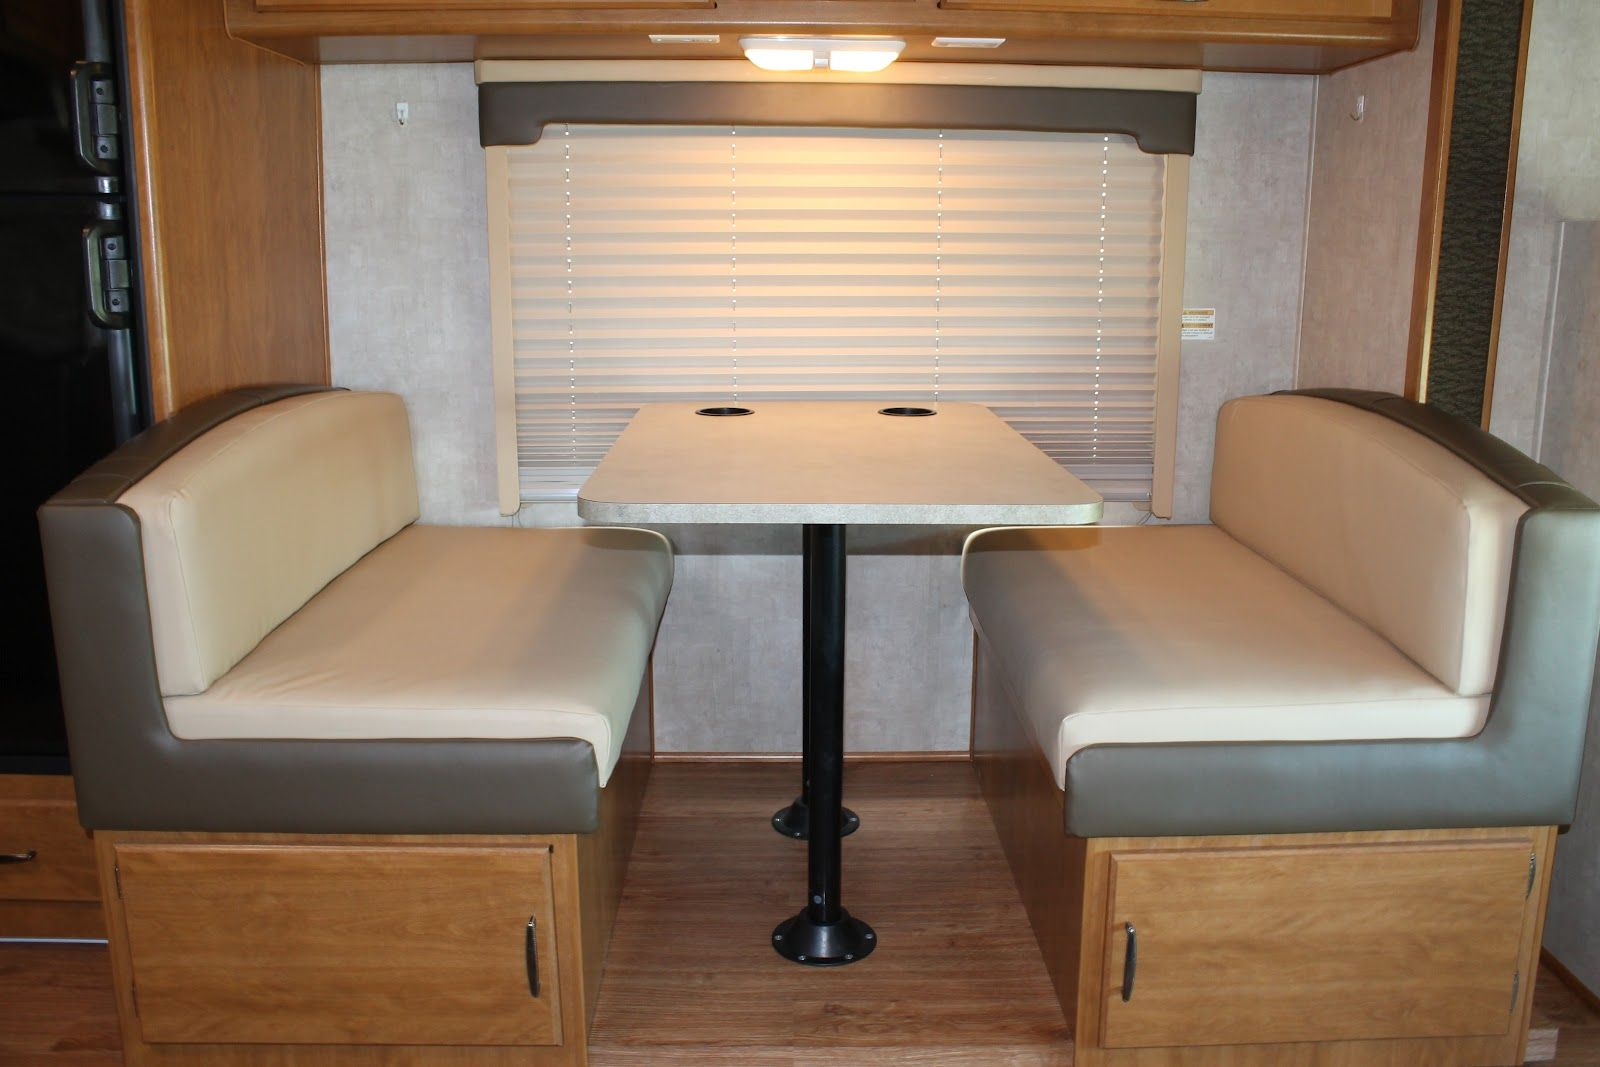 Rv furniture 88 u shaped vinyl dinette booth new rv travel trailer camper rv travel trailers rv travel and rv